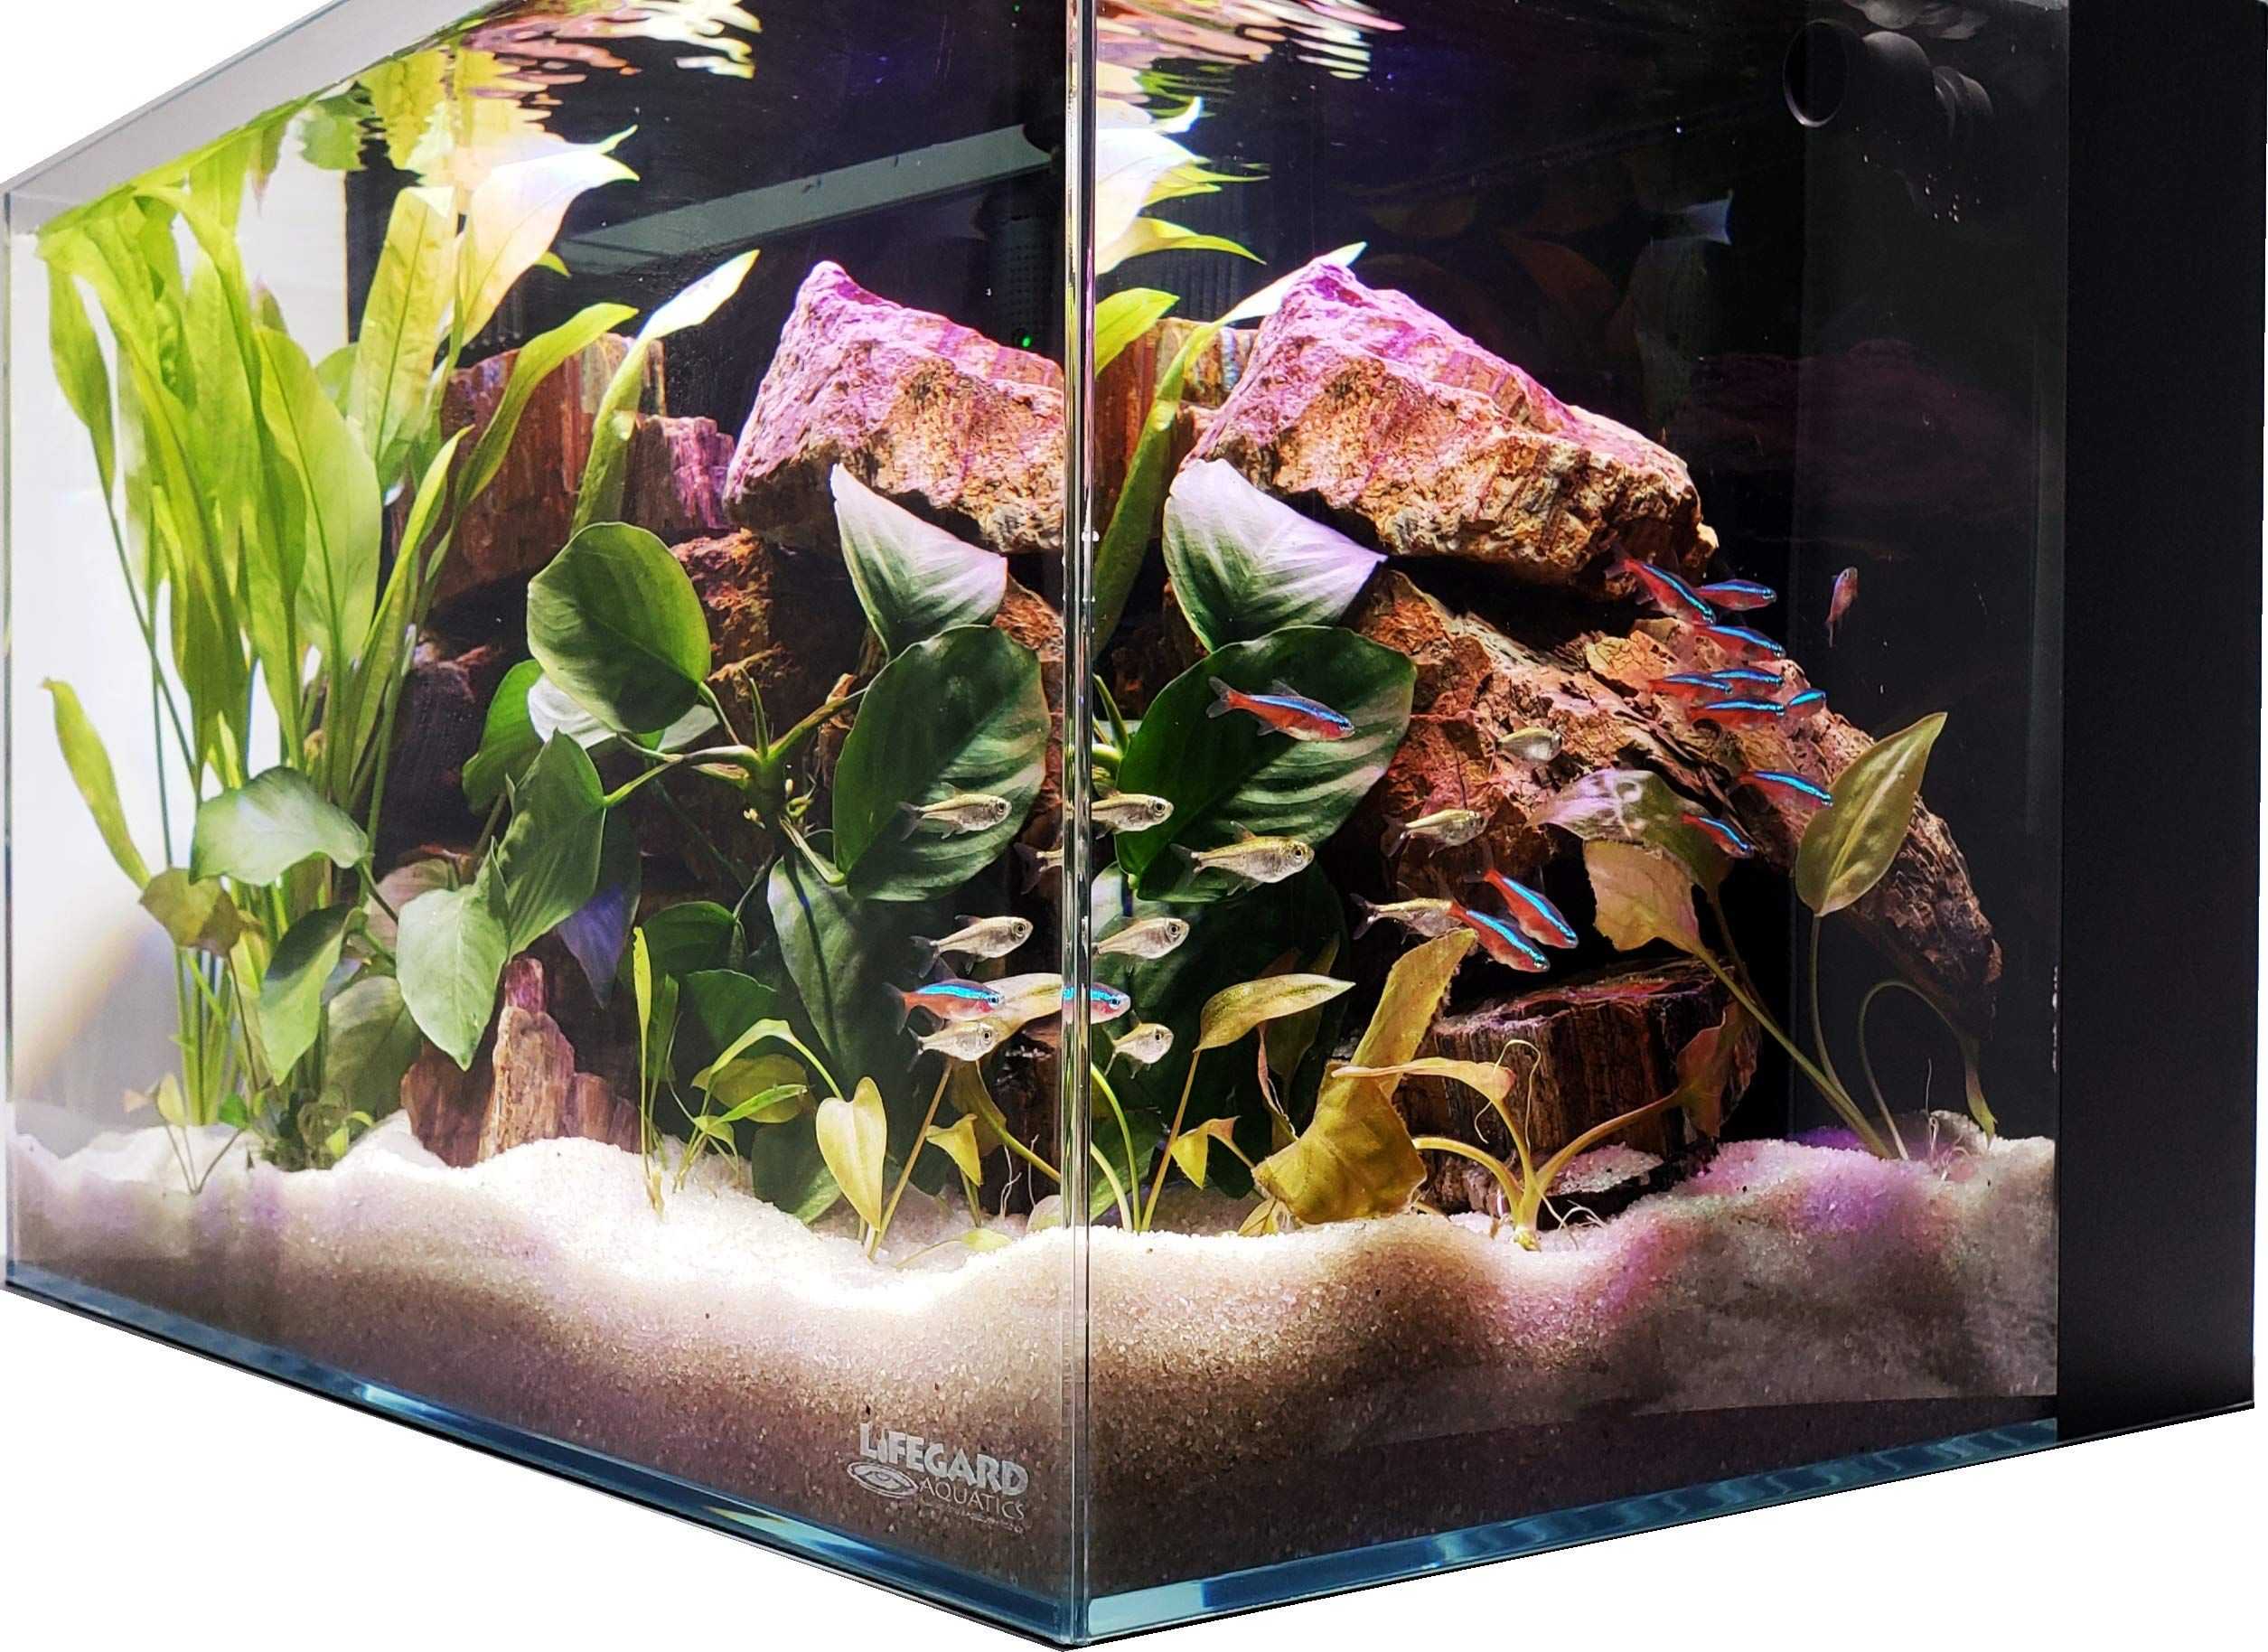 Lifegard Aquatics Ultra Low Iron Crystal Aquarium with Back Filter 45° Beveled Edge Rimless 9.98 Gallons, Clear by Lifegard Aquatics